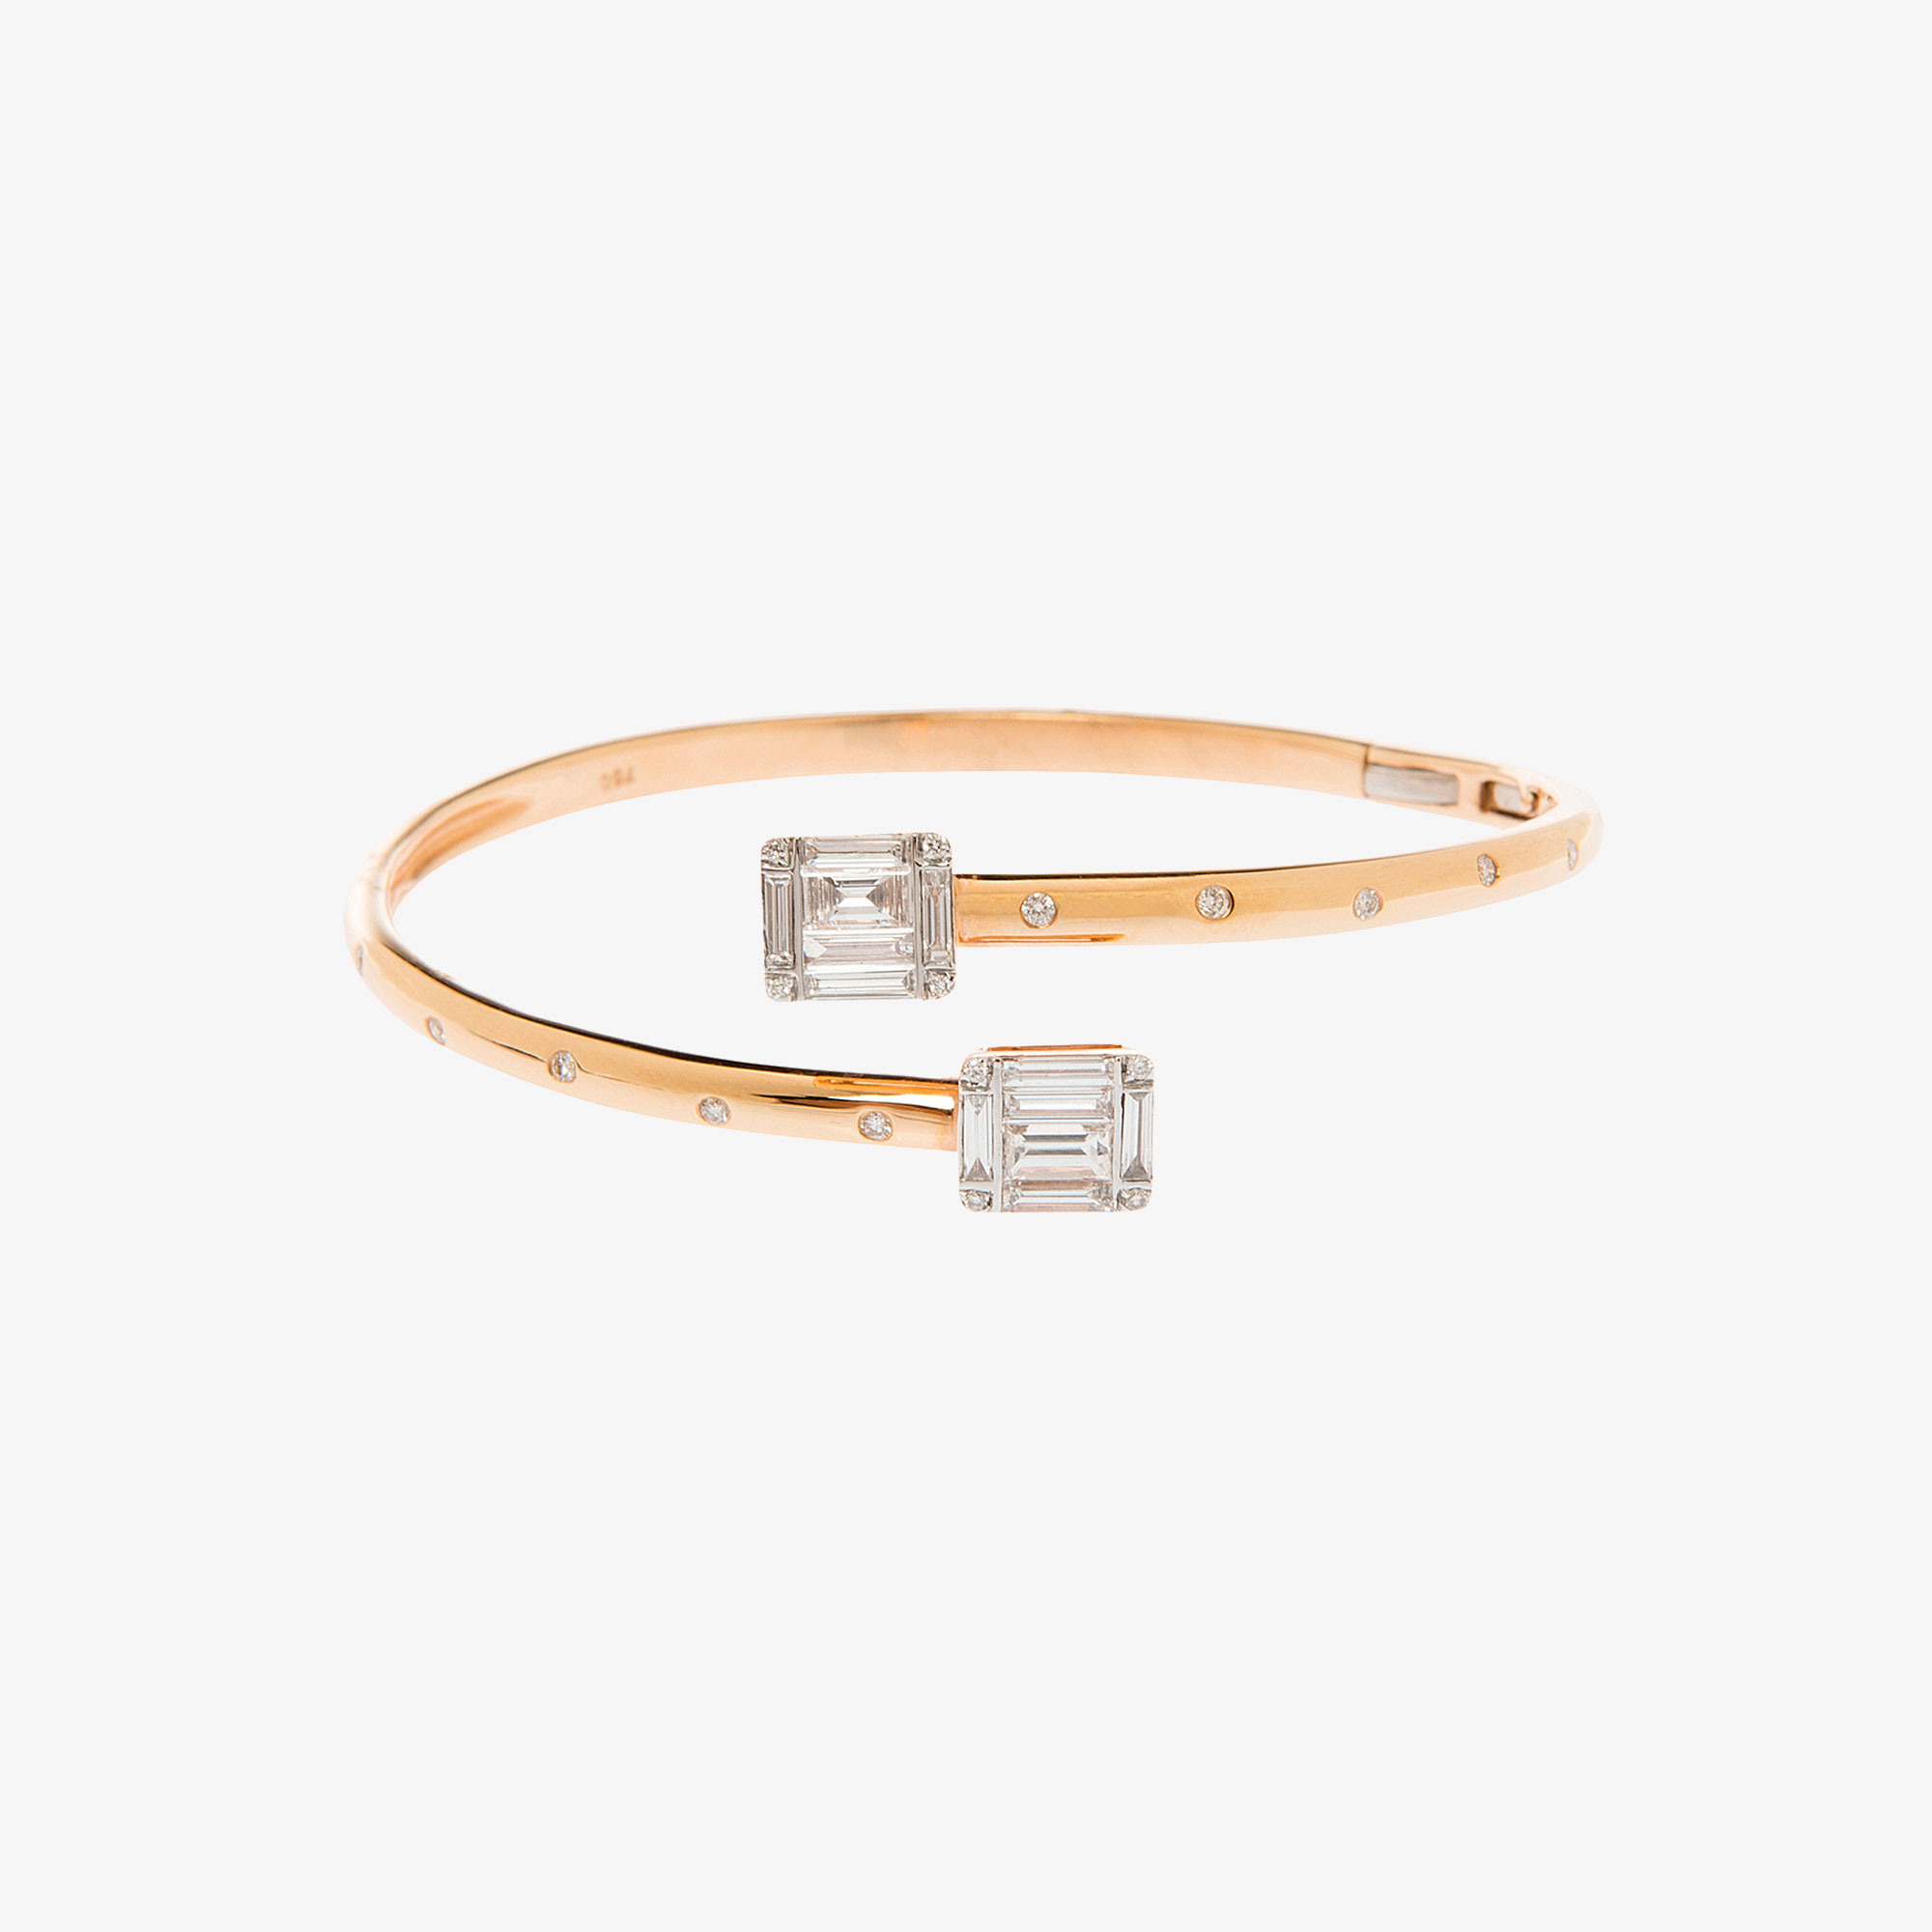 Bangle bracelet in pink gold 18k. with diamonds.